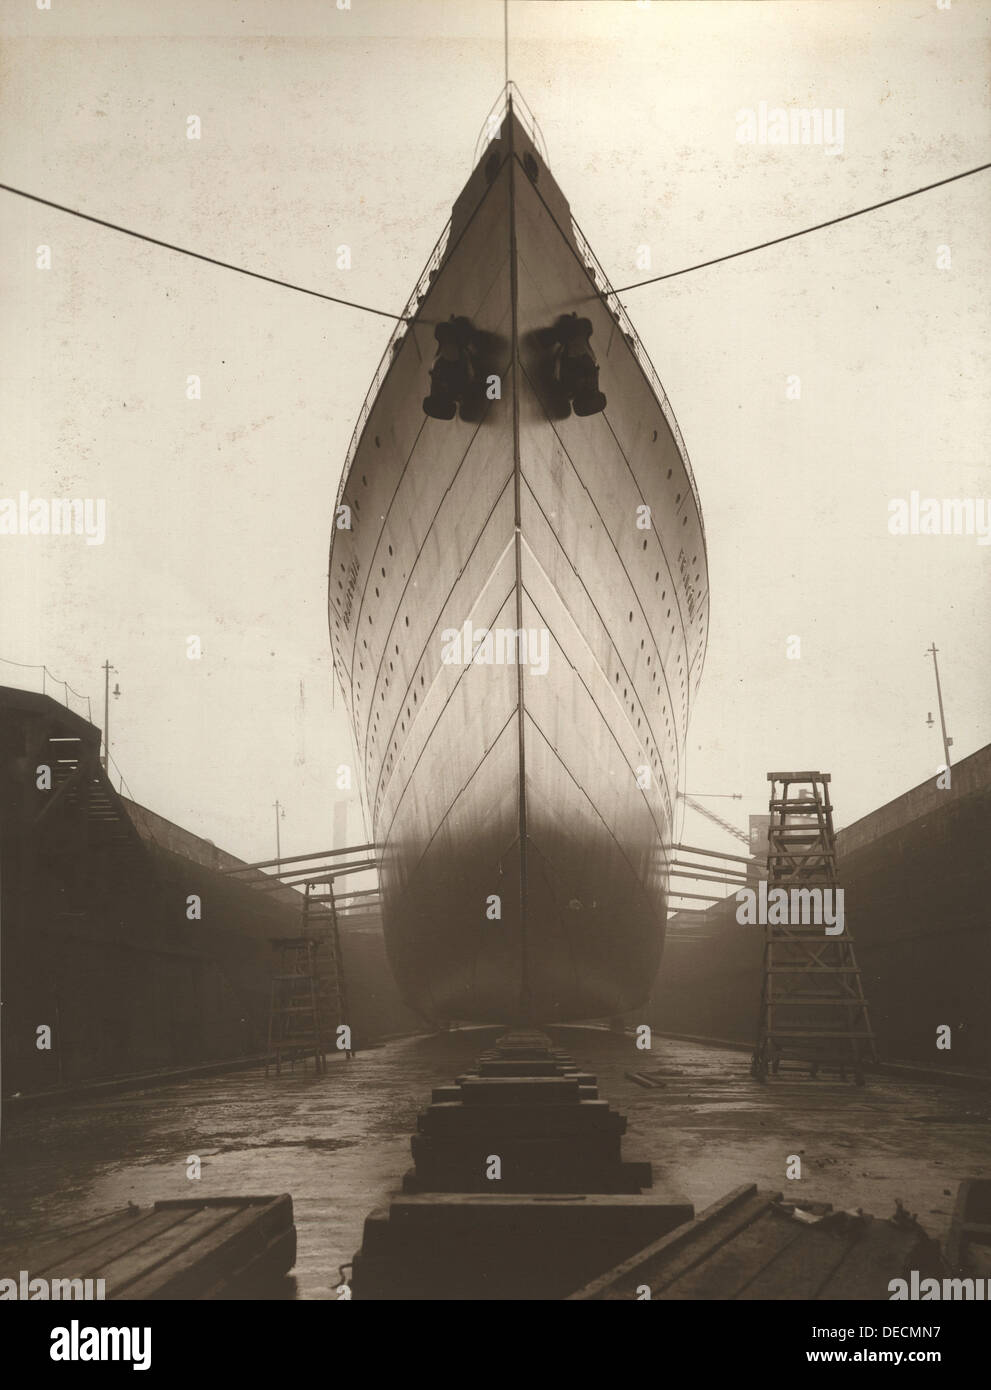 RMS Franconia, which was launched in 1910 and sunk on October 4, 1915. - Stock Image